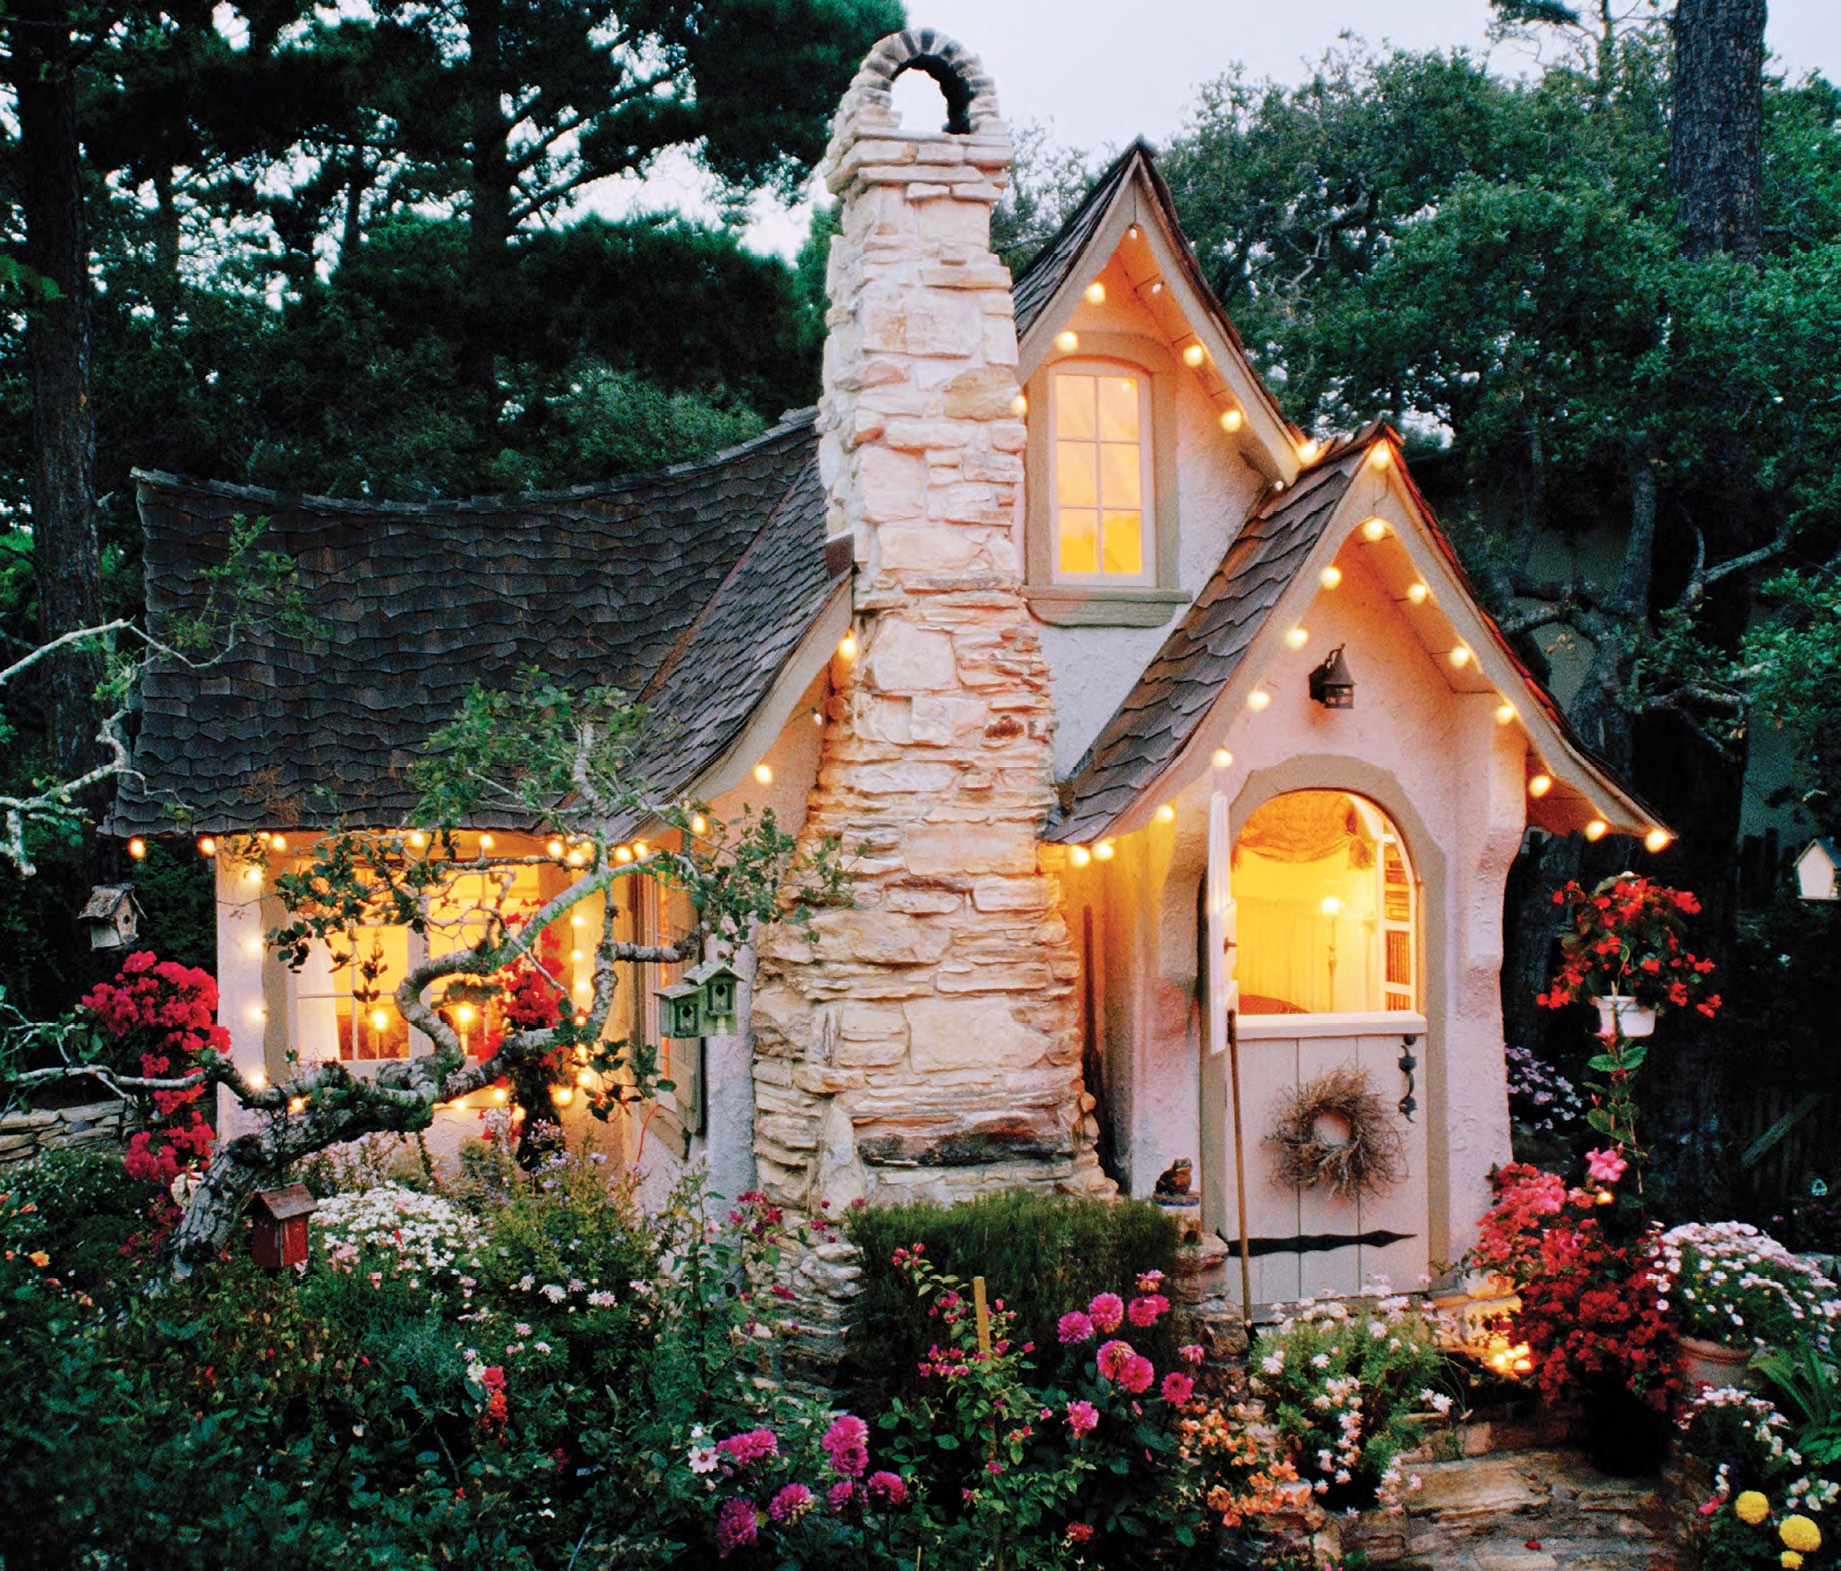 Magnificent The Fairy Tale Cottages Of Carmel By The Sea Enchanted Download Free Architecture Designs Scobabritishbridgeorg